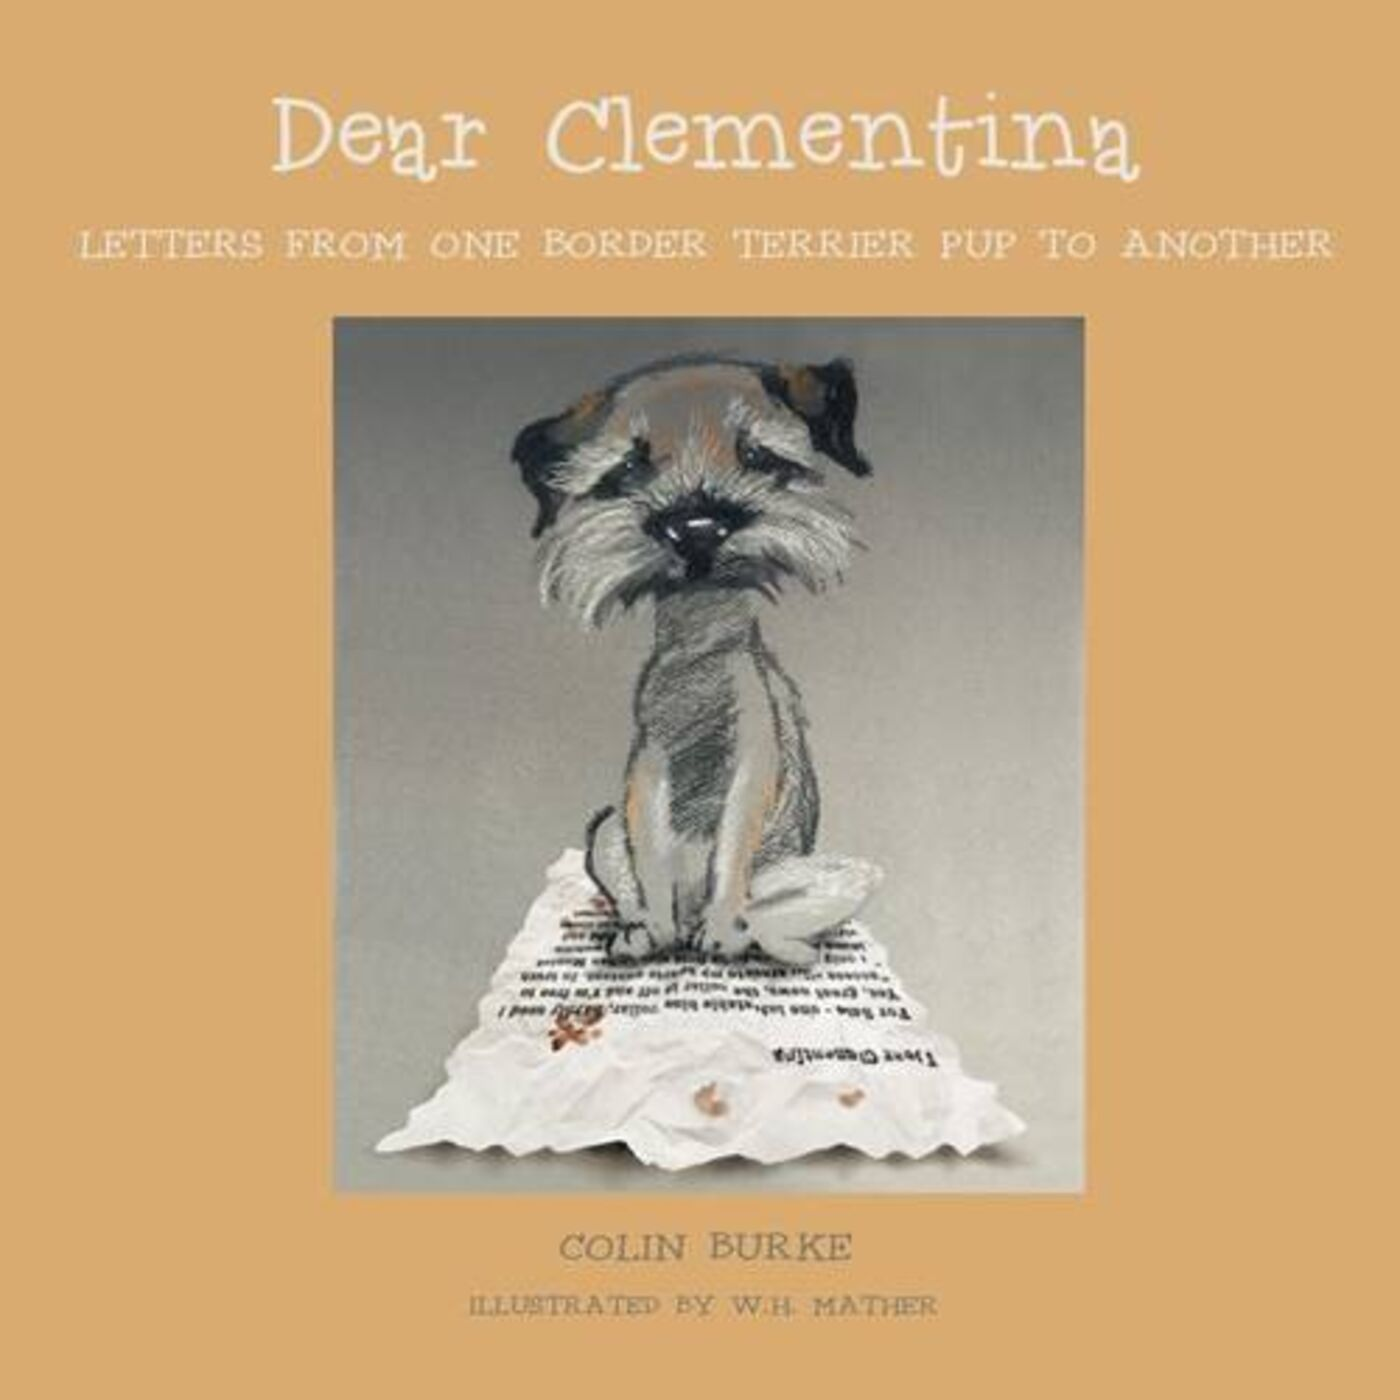 """Dear Clementina Chapter 19 - """"Attack of the Bees!"""""""